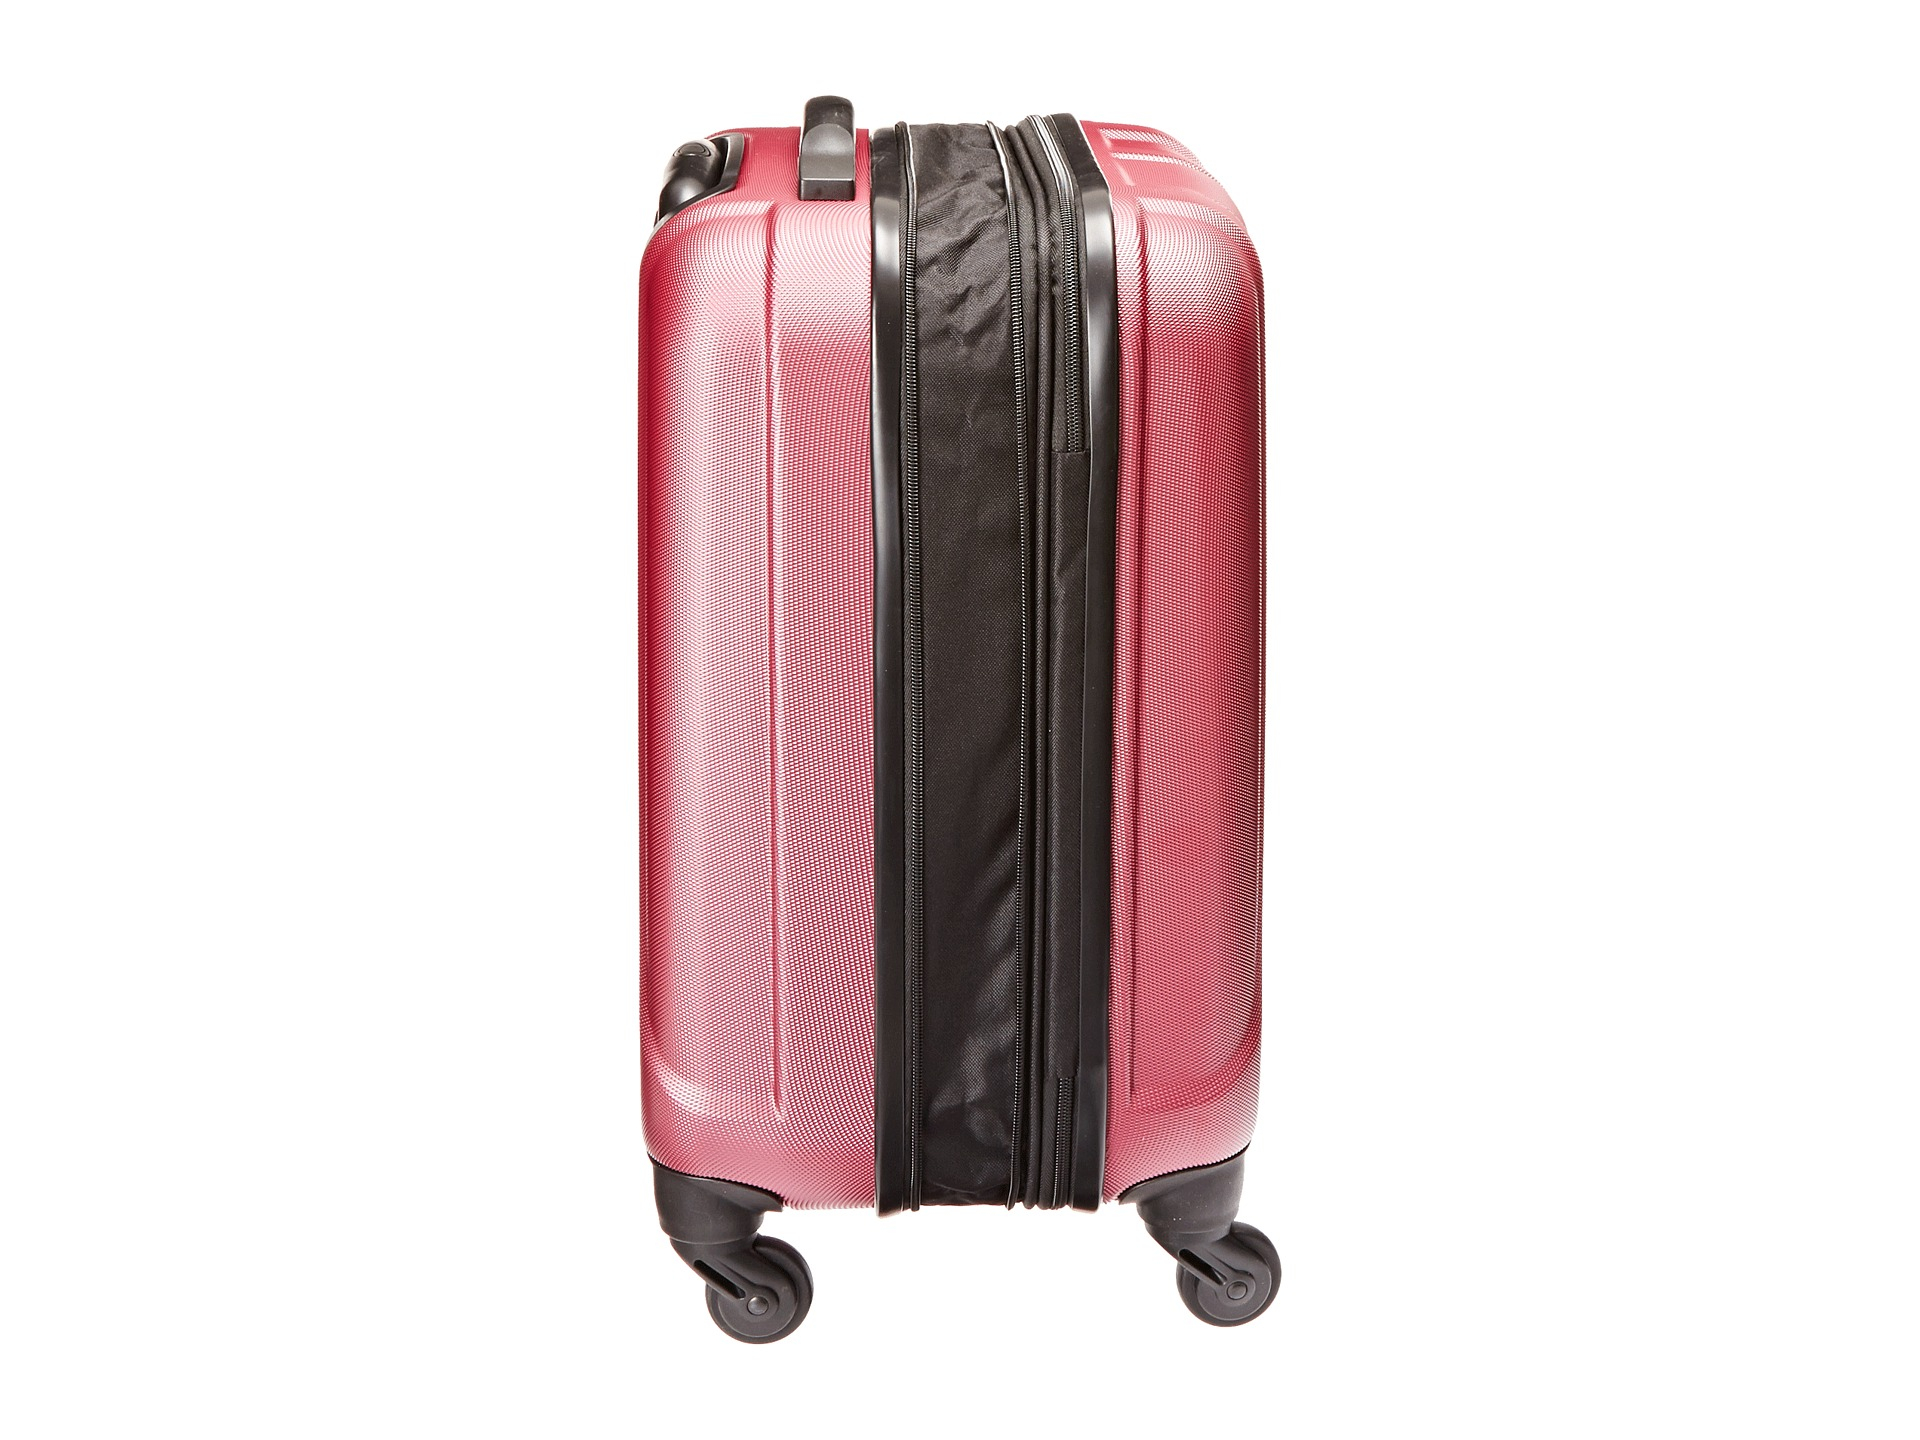 Samsonite Fiero Hardside 20